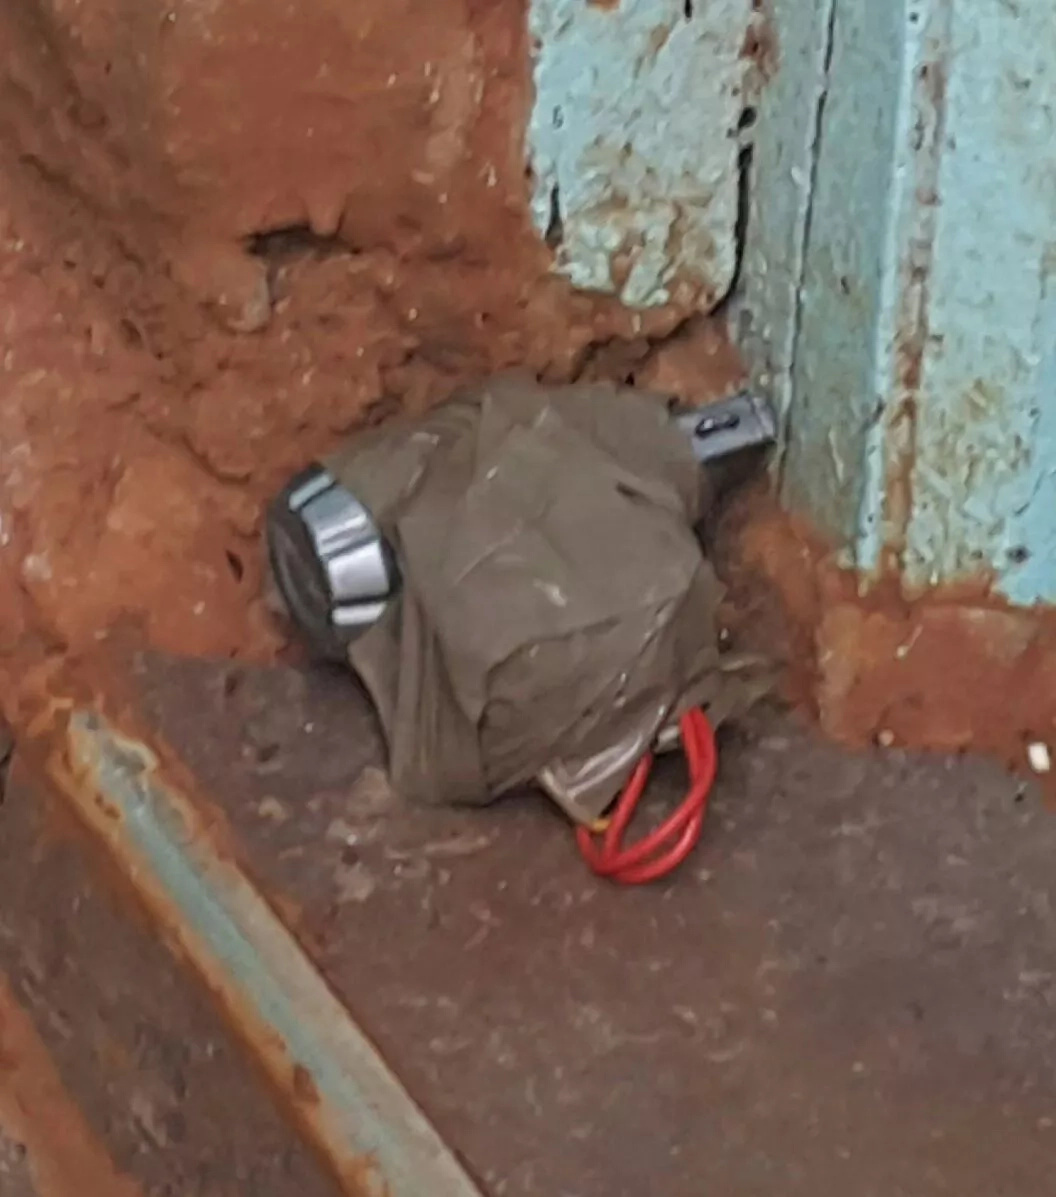 Watchman discovers explosive at church entrance